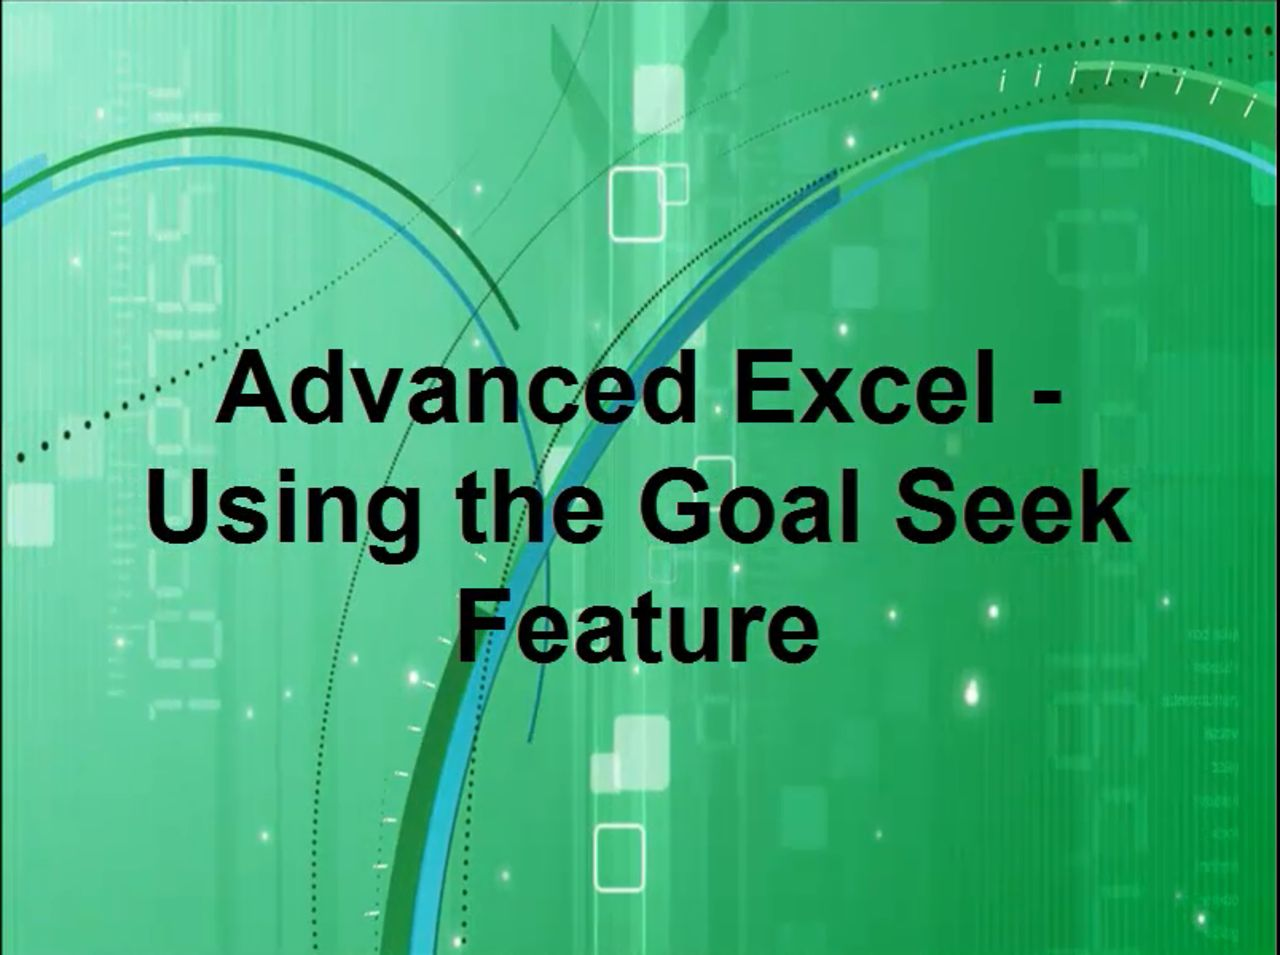 Advanced Excel - Goal Seek